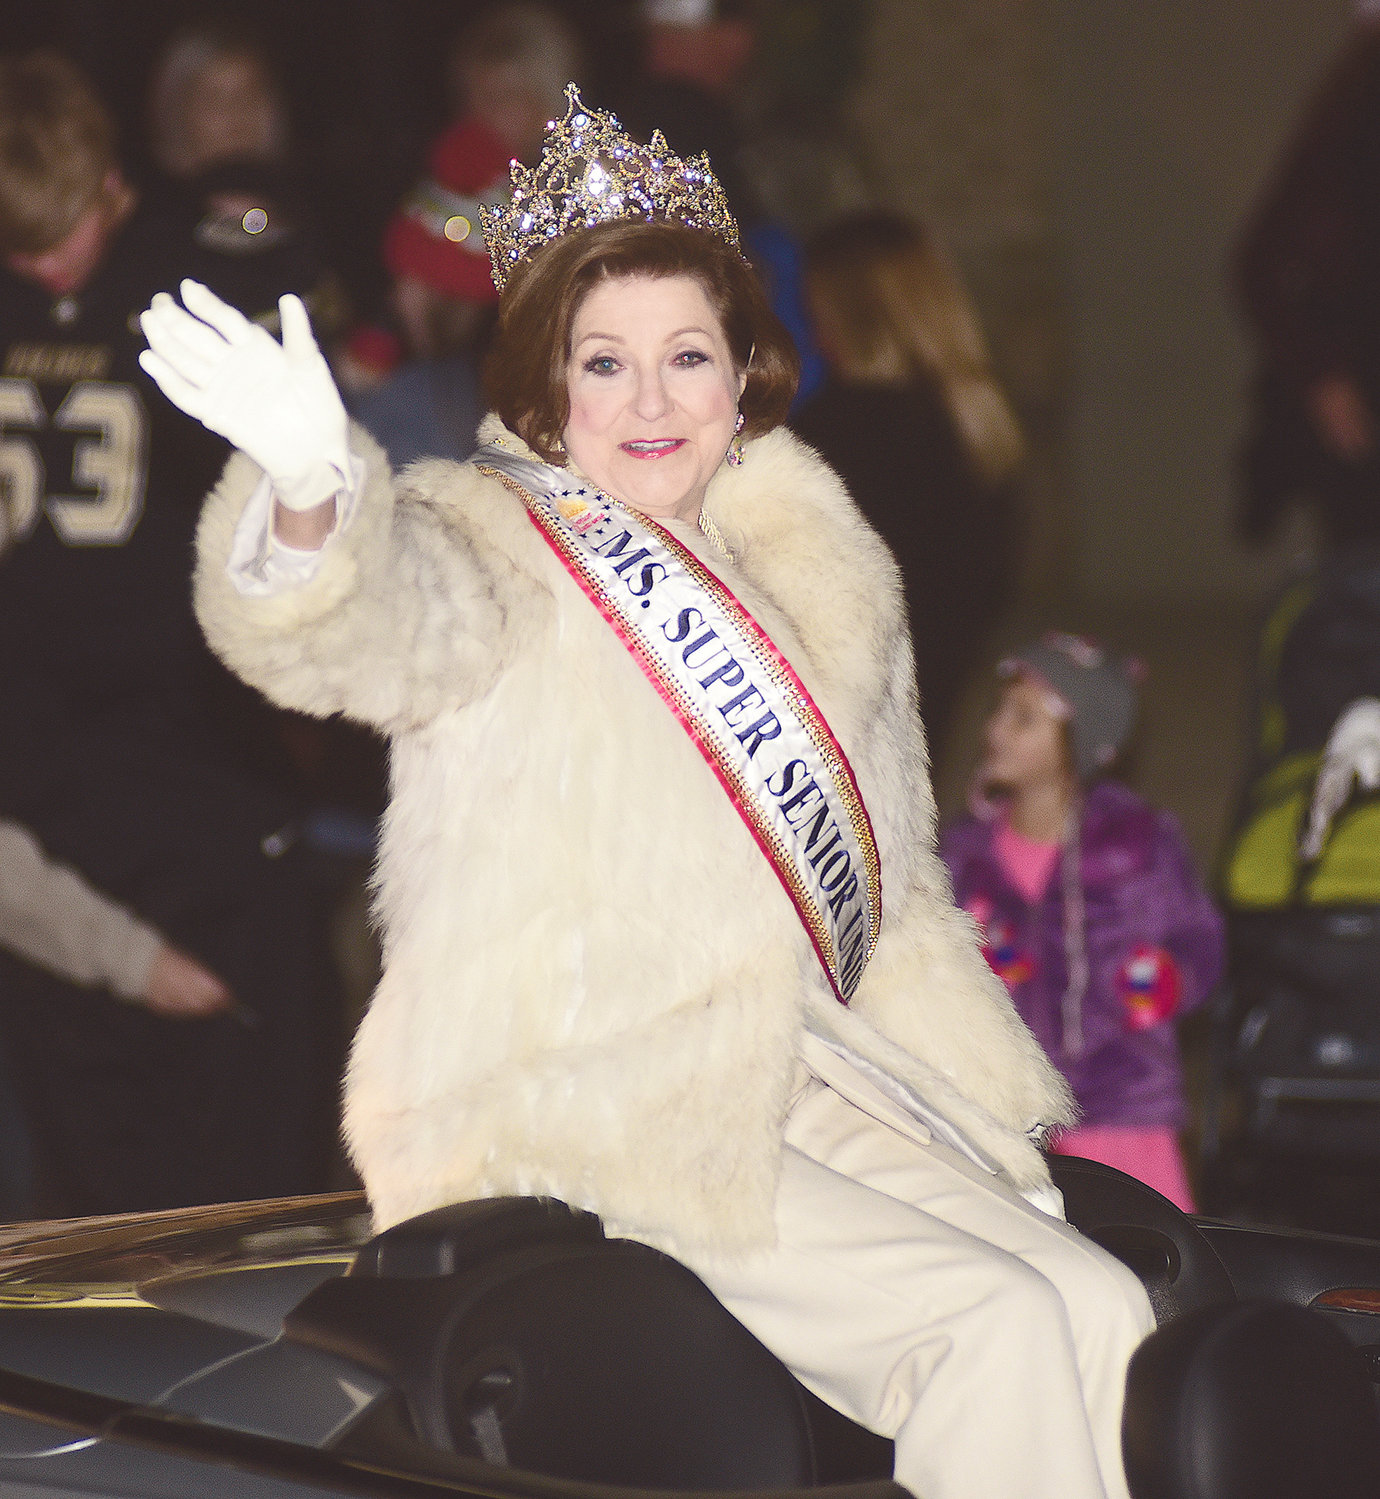 Sally Beth Vick of Jasper, the newly crowned 2019 Ms. Super Senior Universe, waves to the crowd at Tuesday's Chamber of Commerce of Walker County Christmas parade in Jasper.